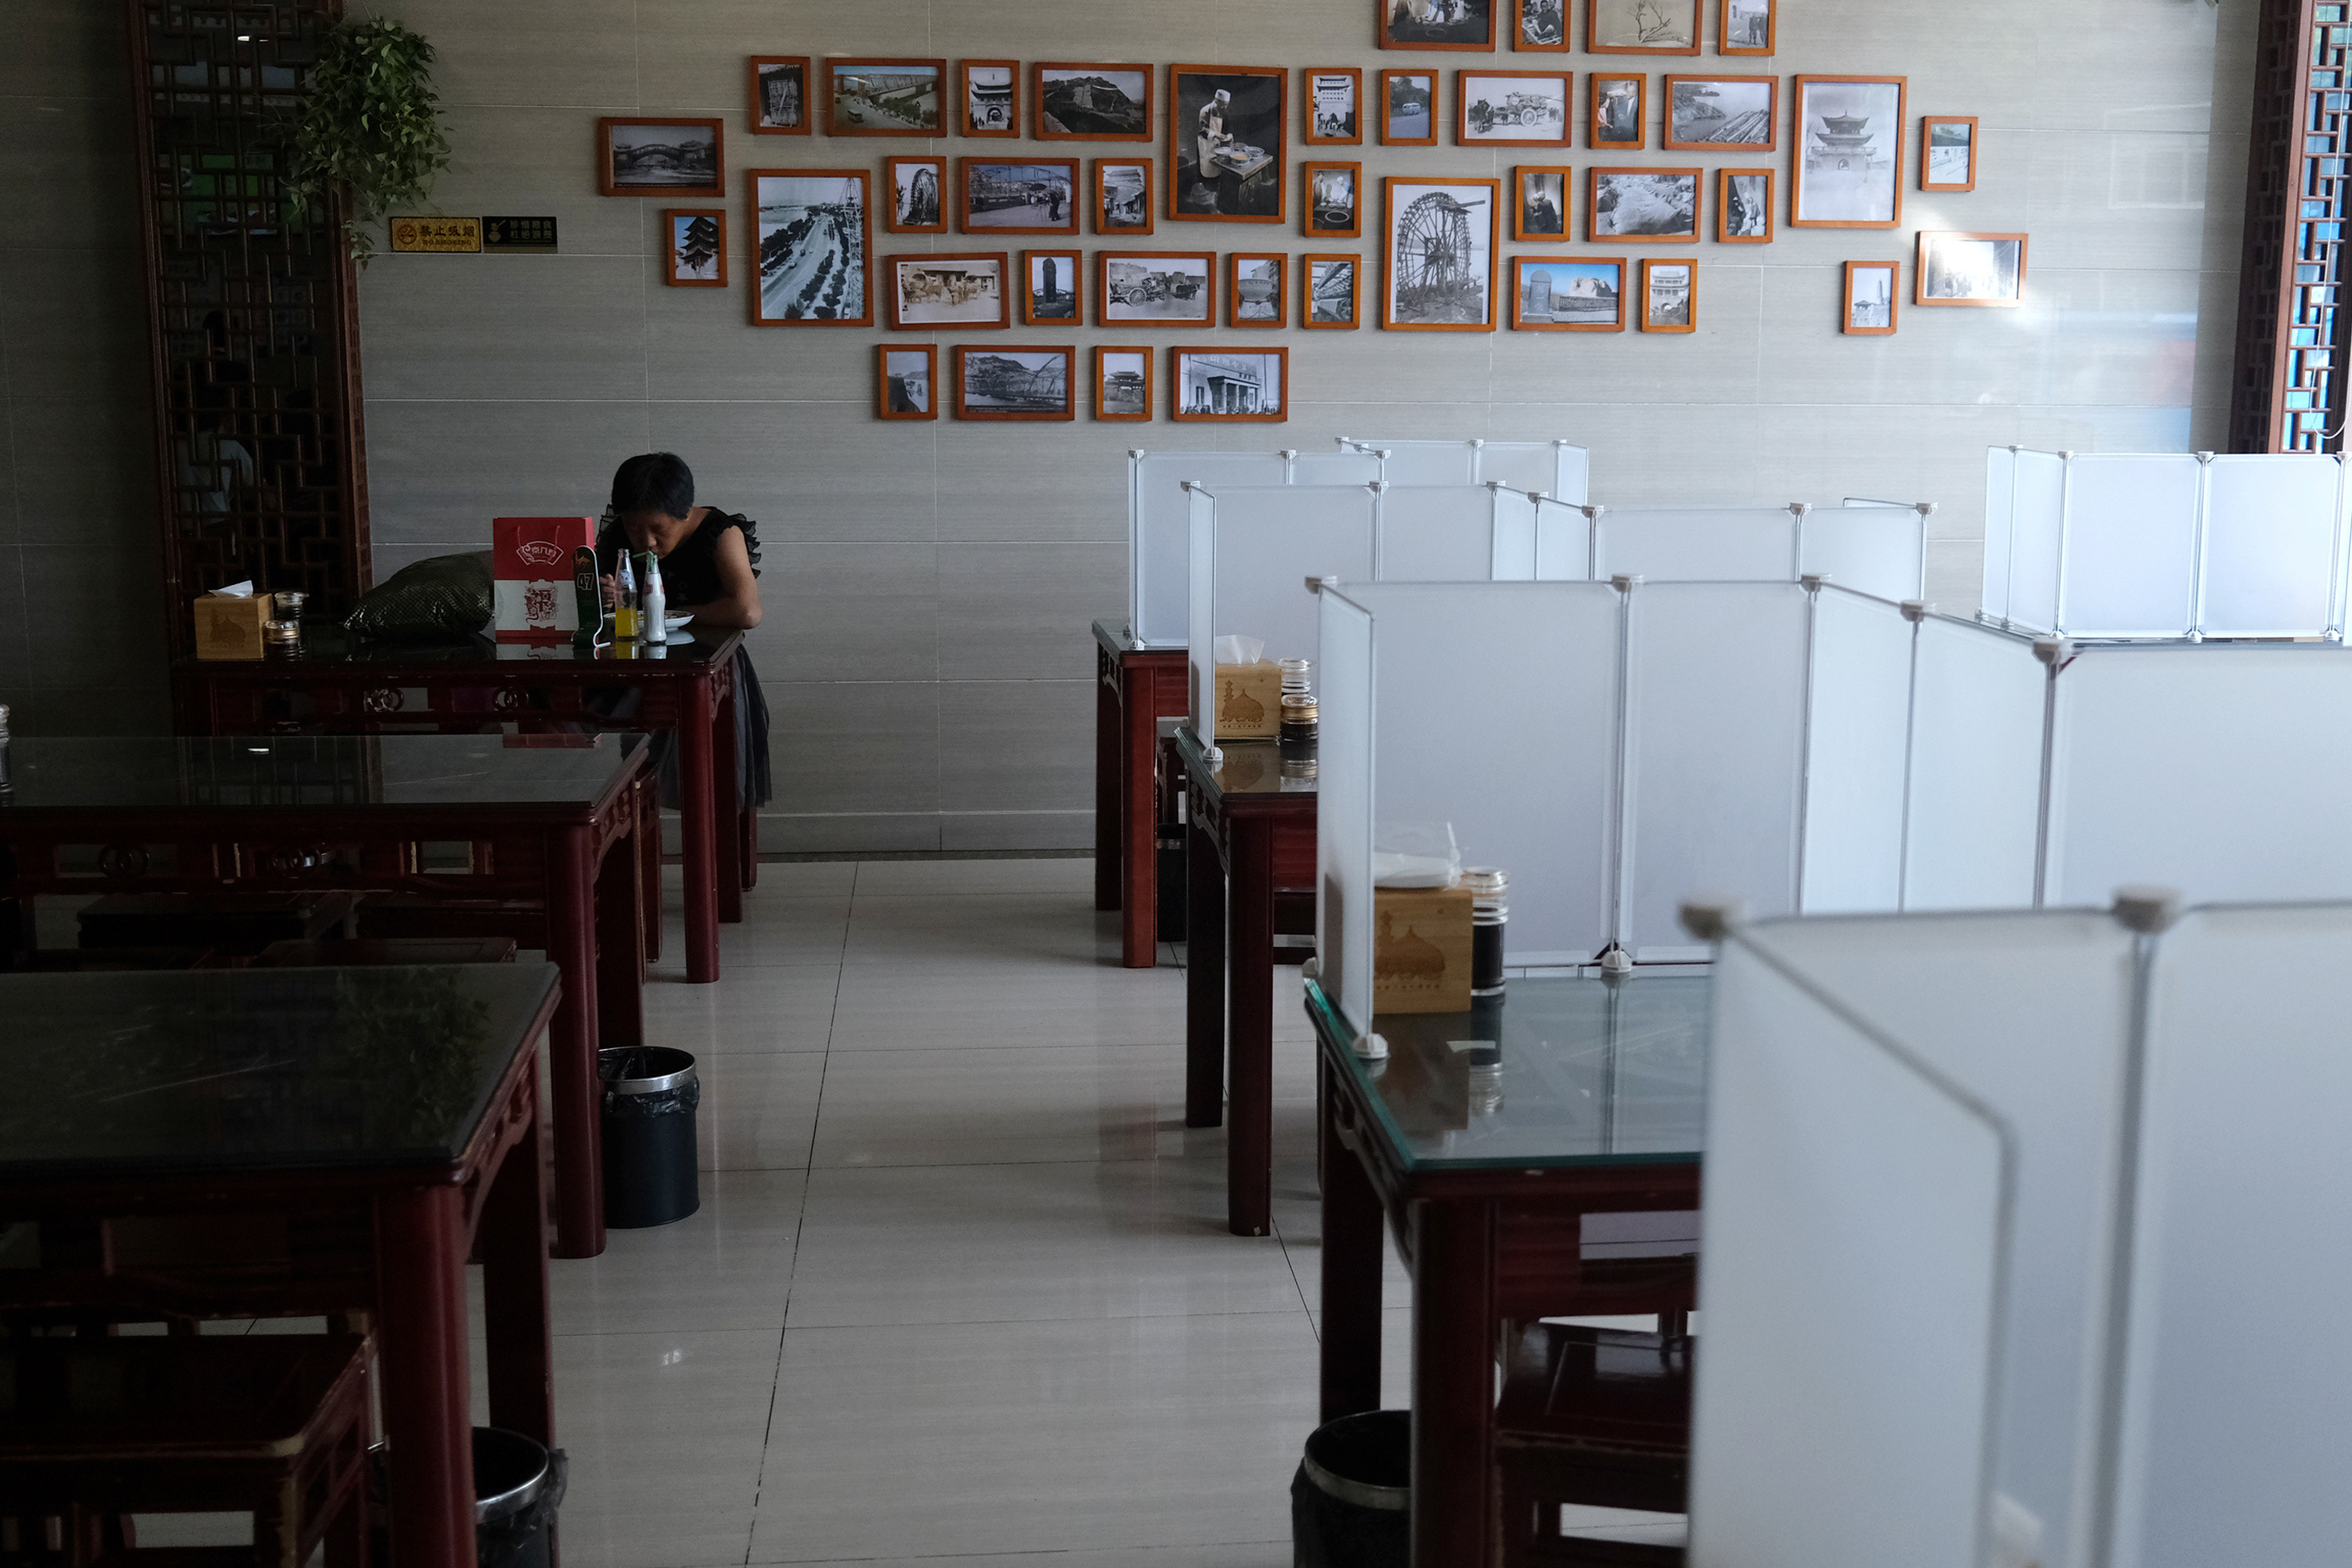 A customer eats meal next to tables with partitions, following the outbreak of the coronavirus disease (COVID-19), at a restaurant in Beijing, China June 30, 2020. REUTERS/Tingshu Wang - RC2FJH9EXEBB